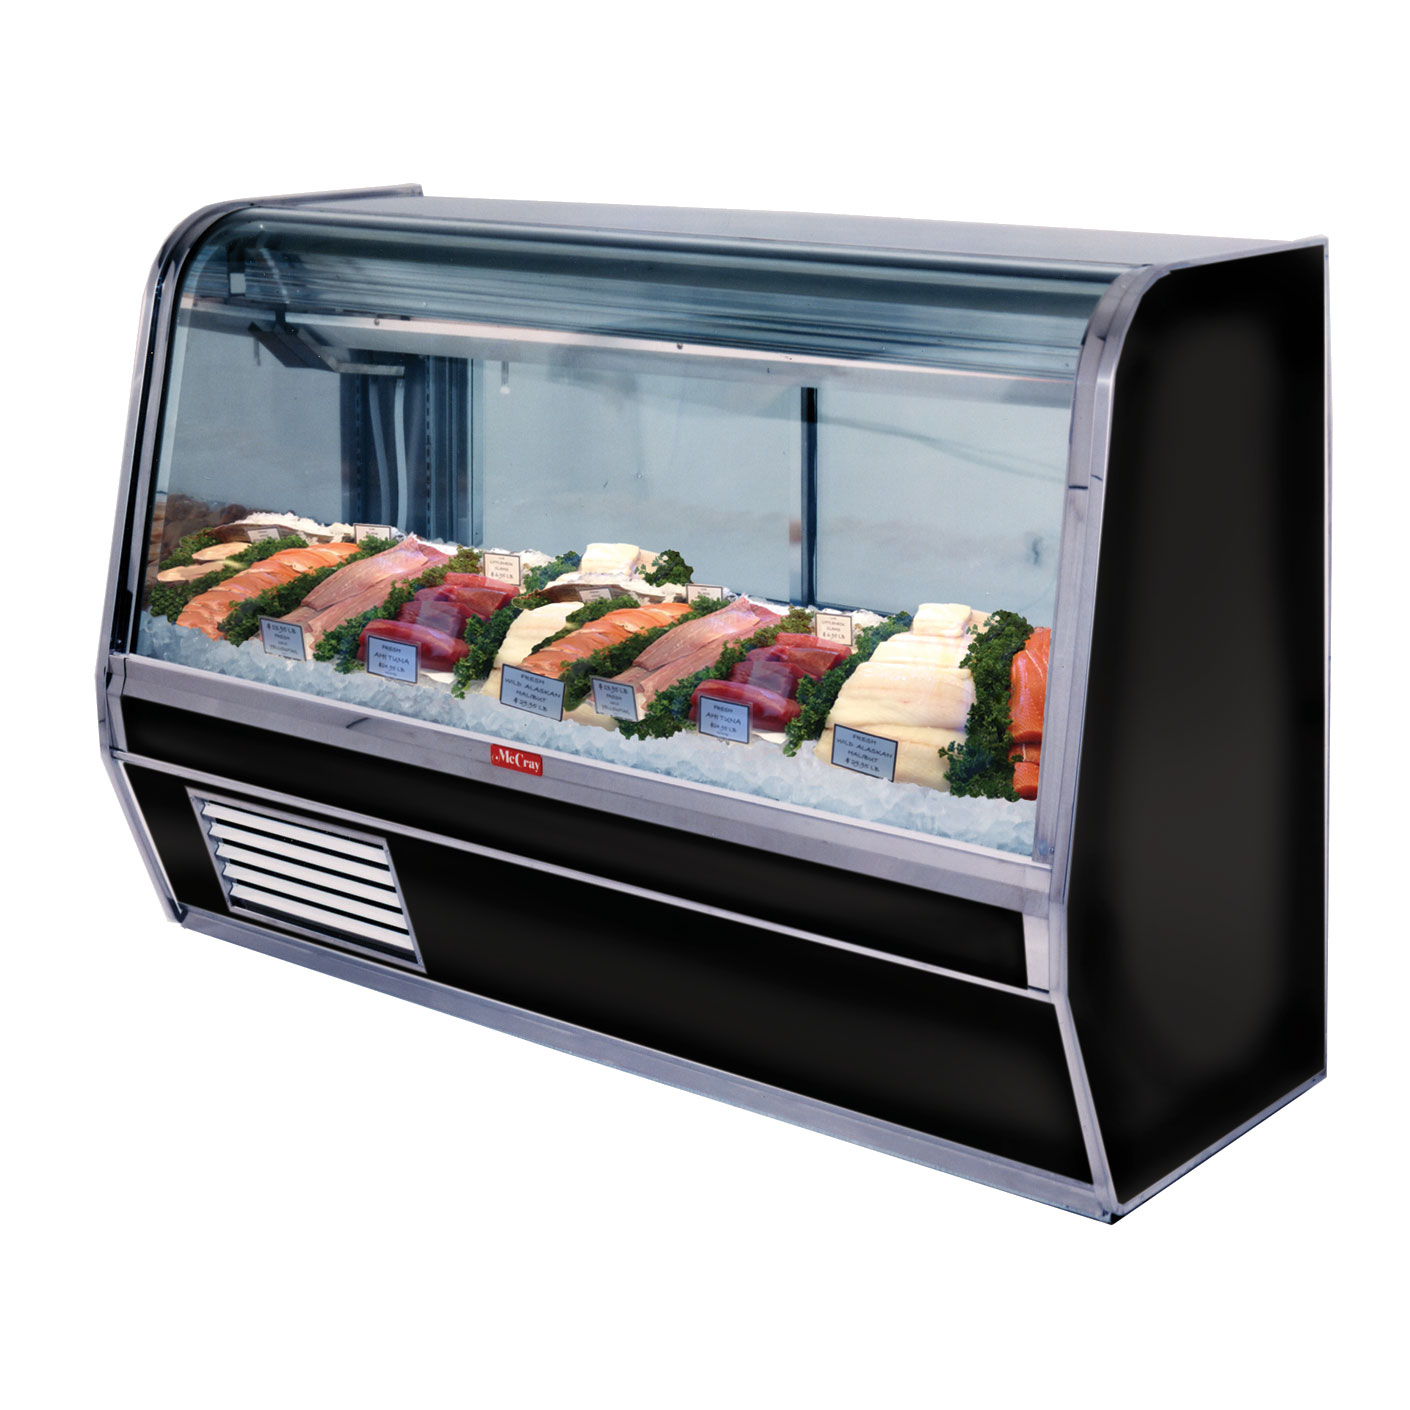 Howard-McCray R-CFS32E-8-S-LED display case, deli seafood / poultry